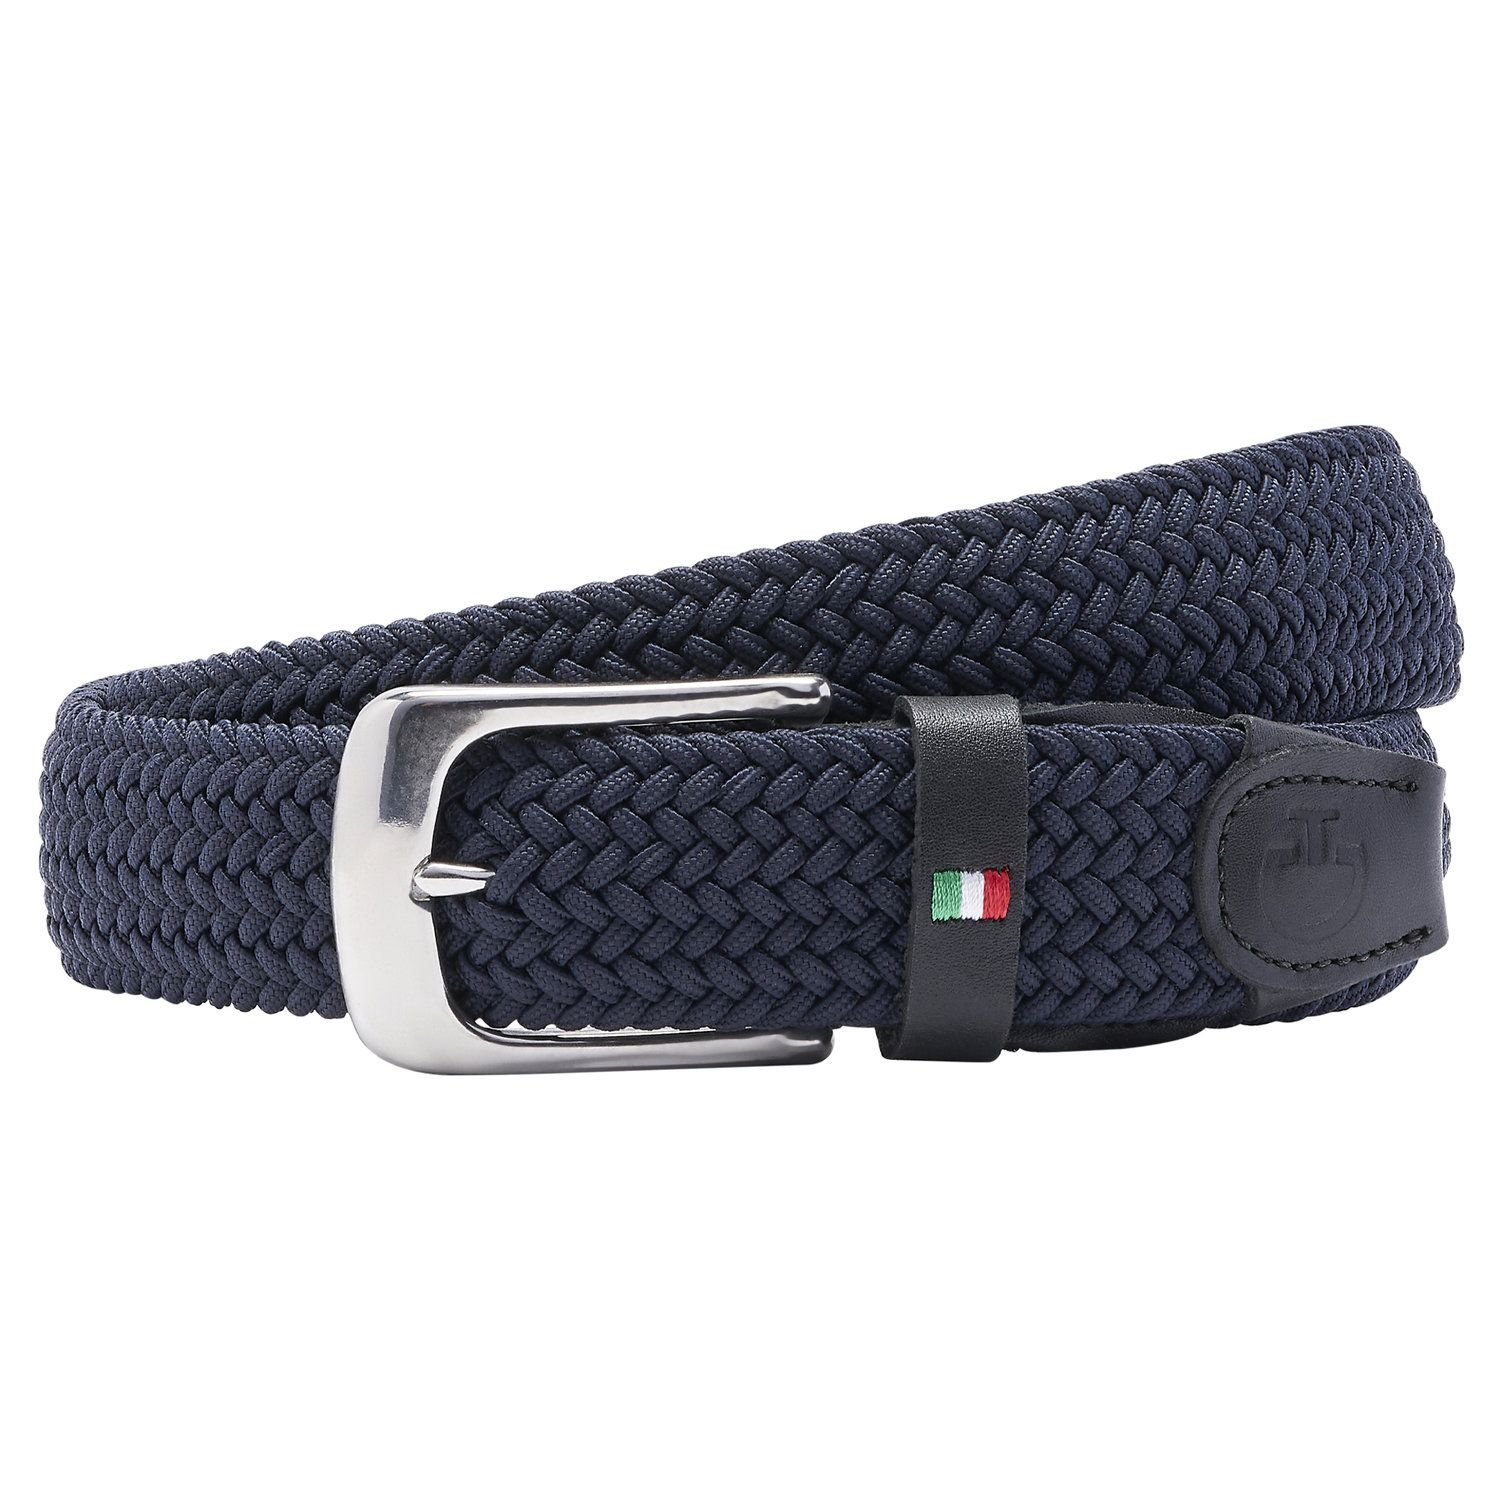 Men's FISE belt